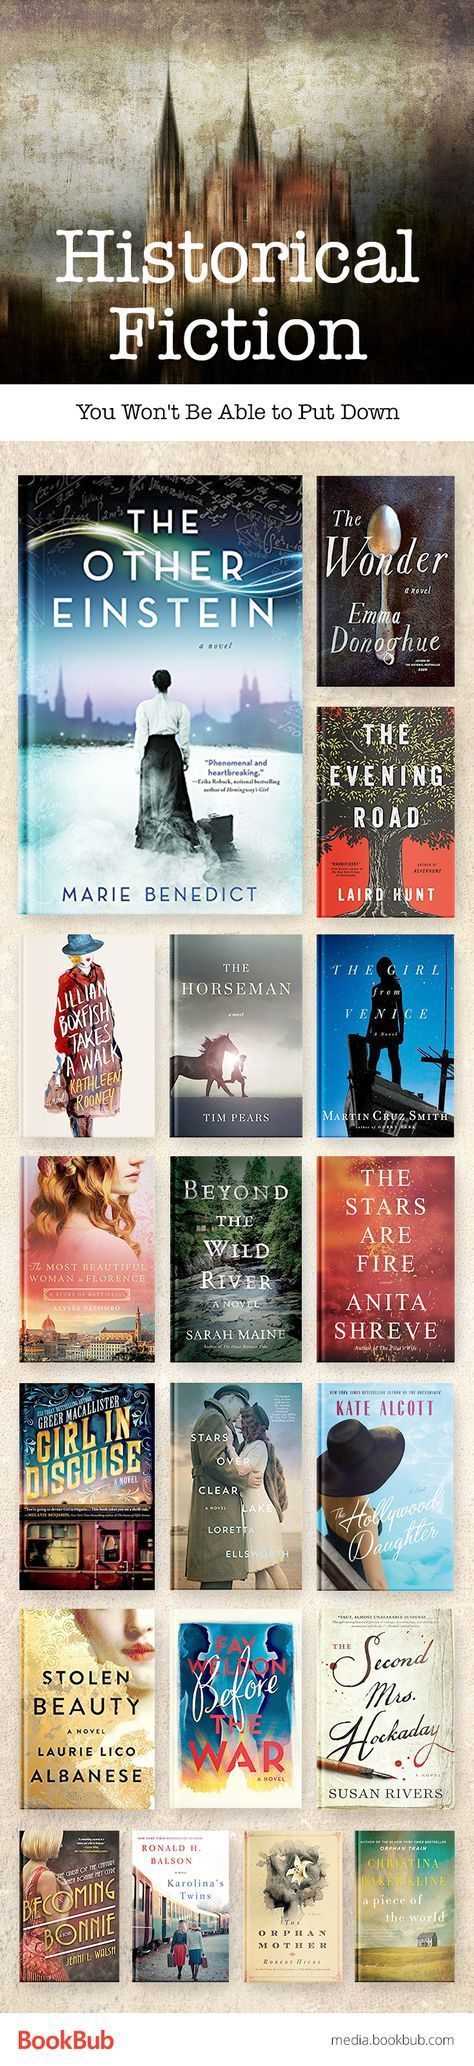 19 Historical Fiction Books To Read In One Sitting